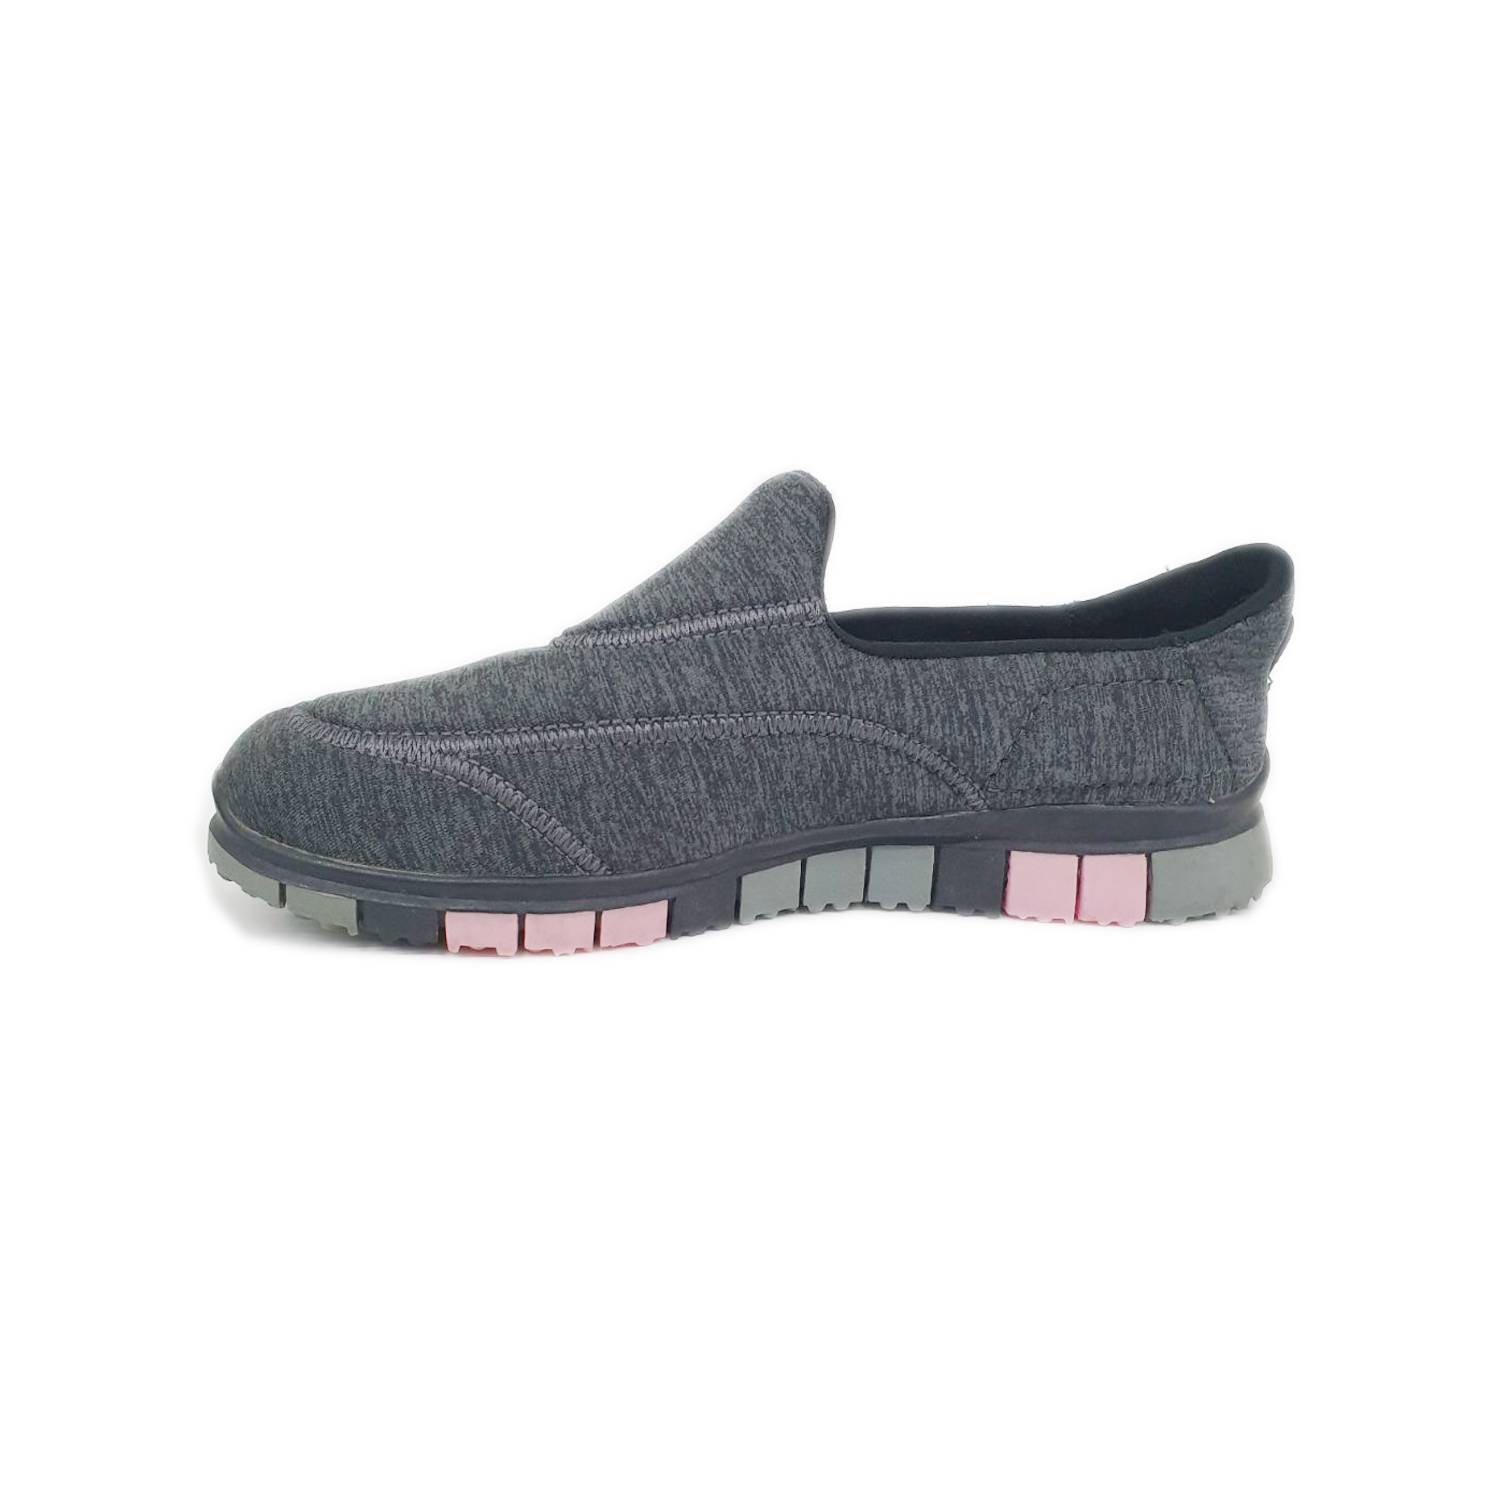 Ladies Slip-On Sneakers #41807.3850.12